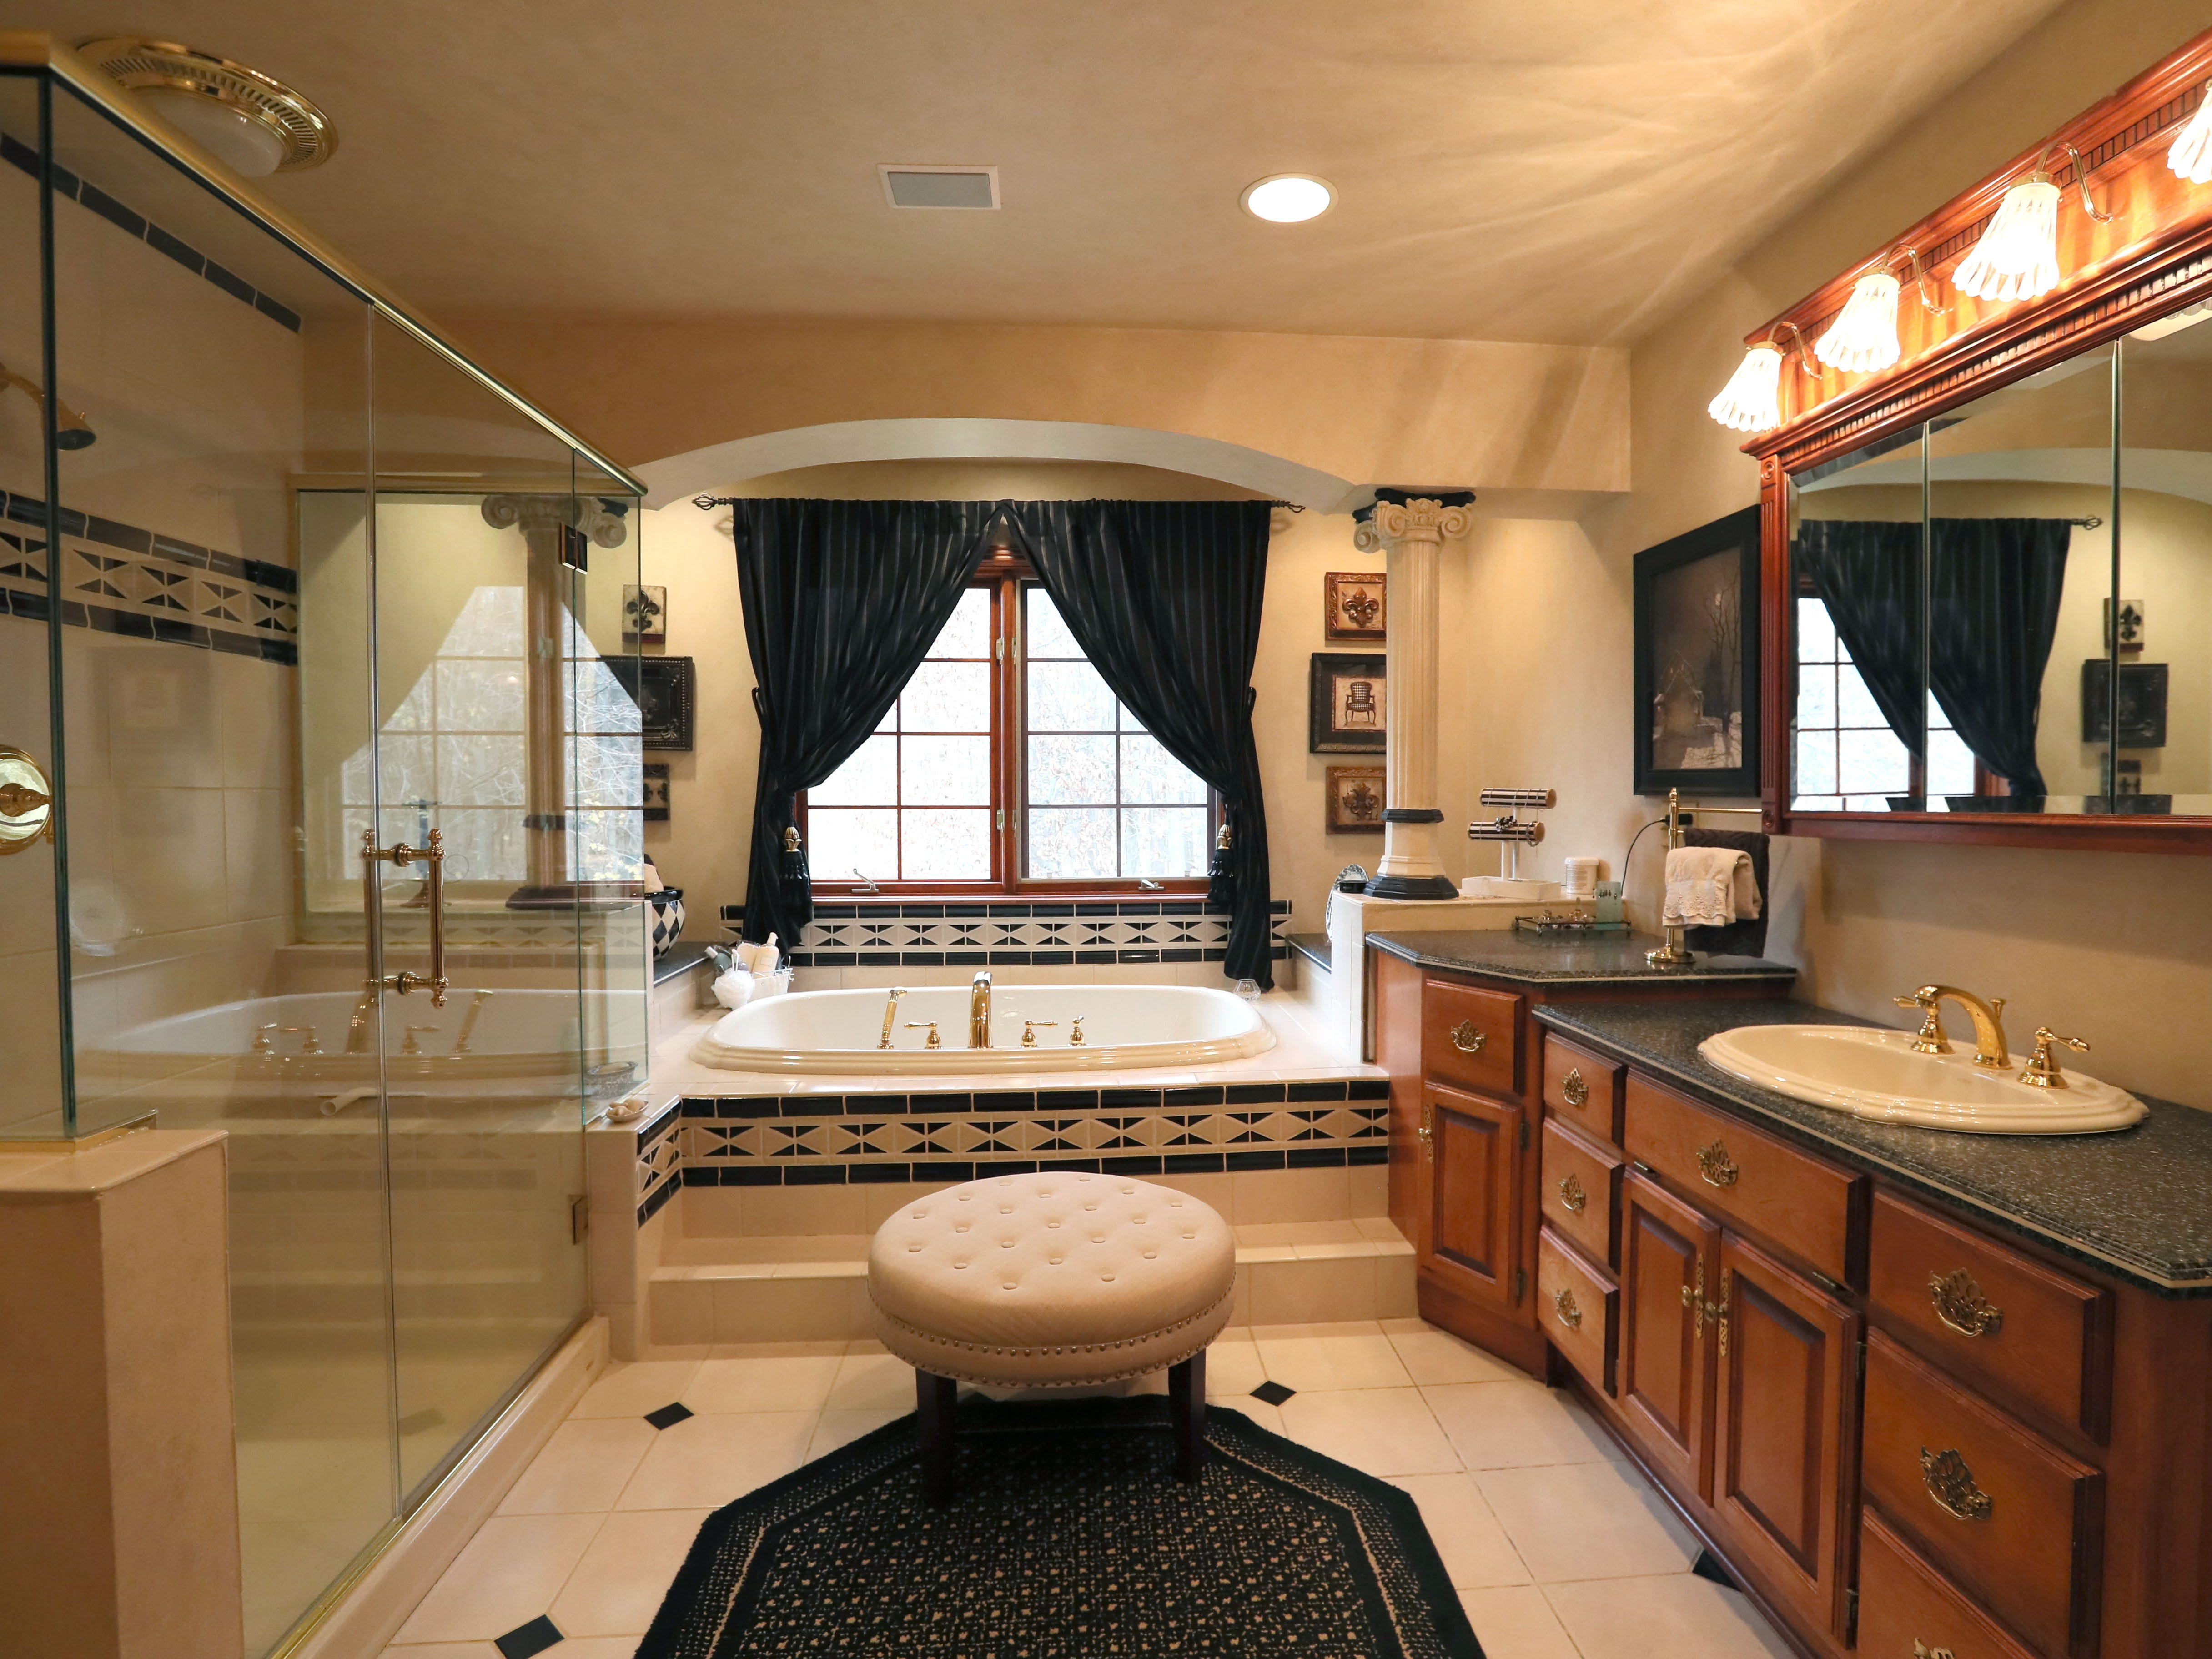 Homeowners Janet Libbey and Dick Clement designed the spacious master bathroom themselves.